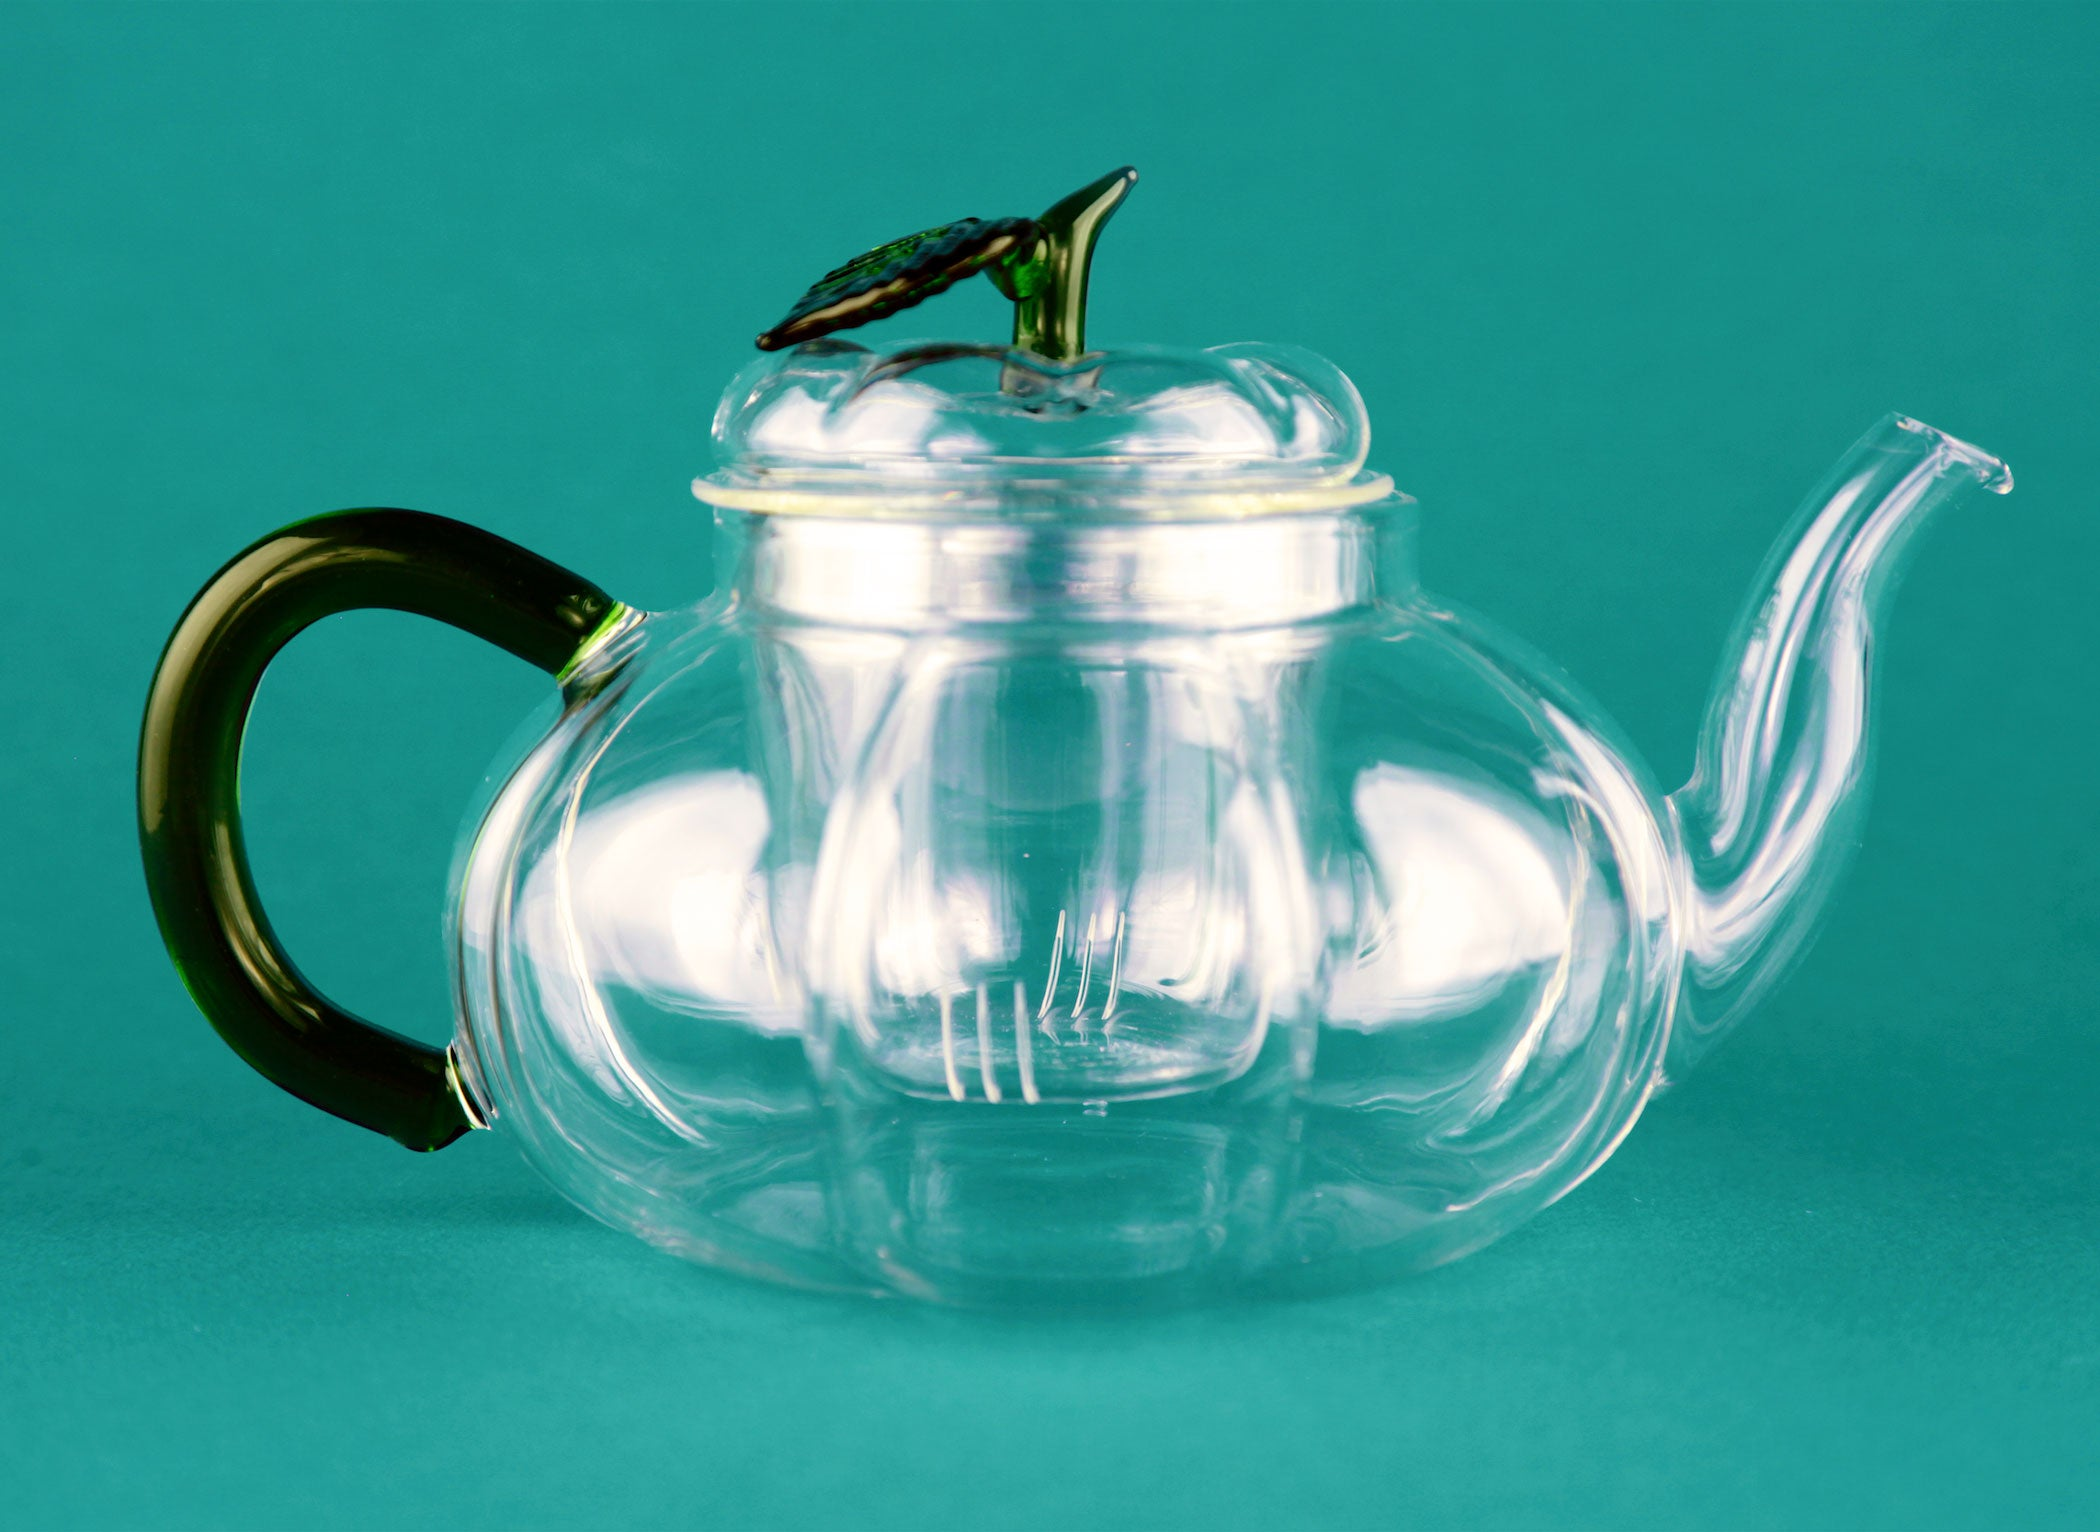 Green handle glass teapot 700 ml with infuser for emotea